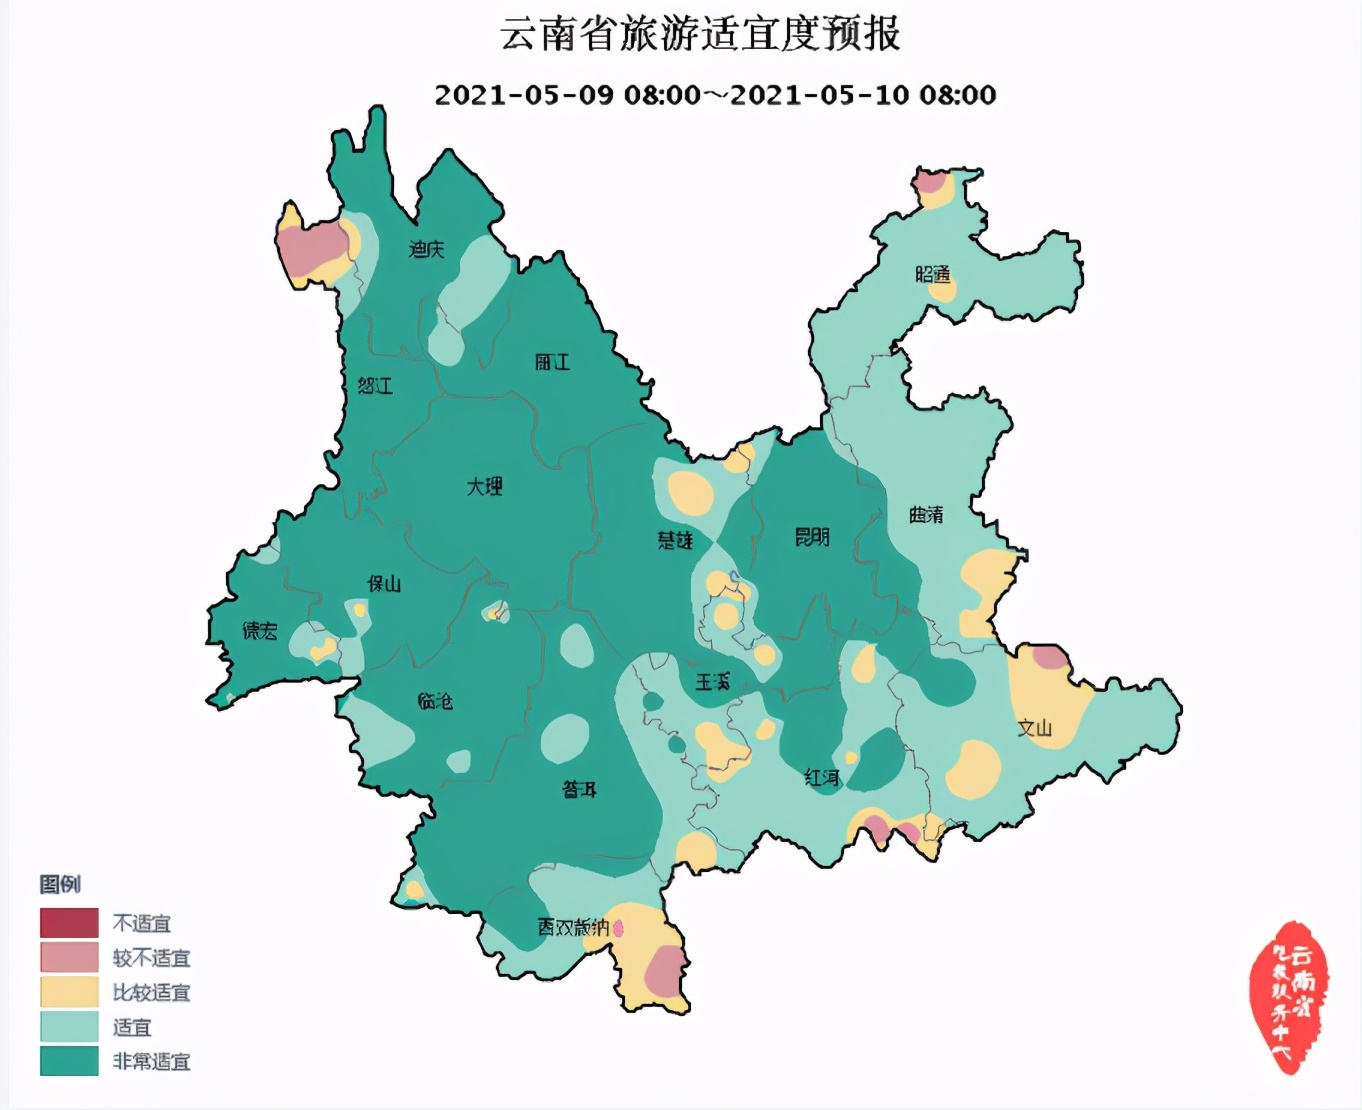 http://i.weather.com.cn/images/yunnan/tqyw/2021/05/07/987029ACFEFE42F37749E2439A05BCCF.jpg